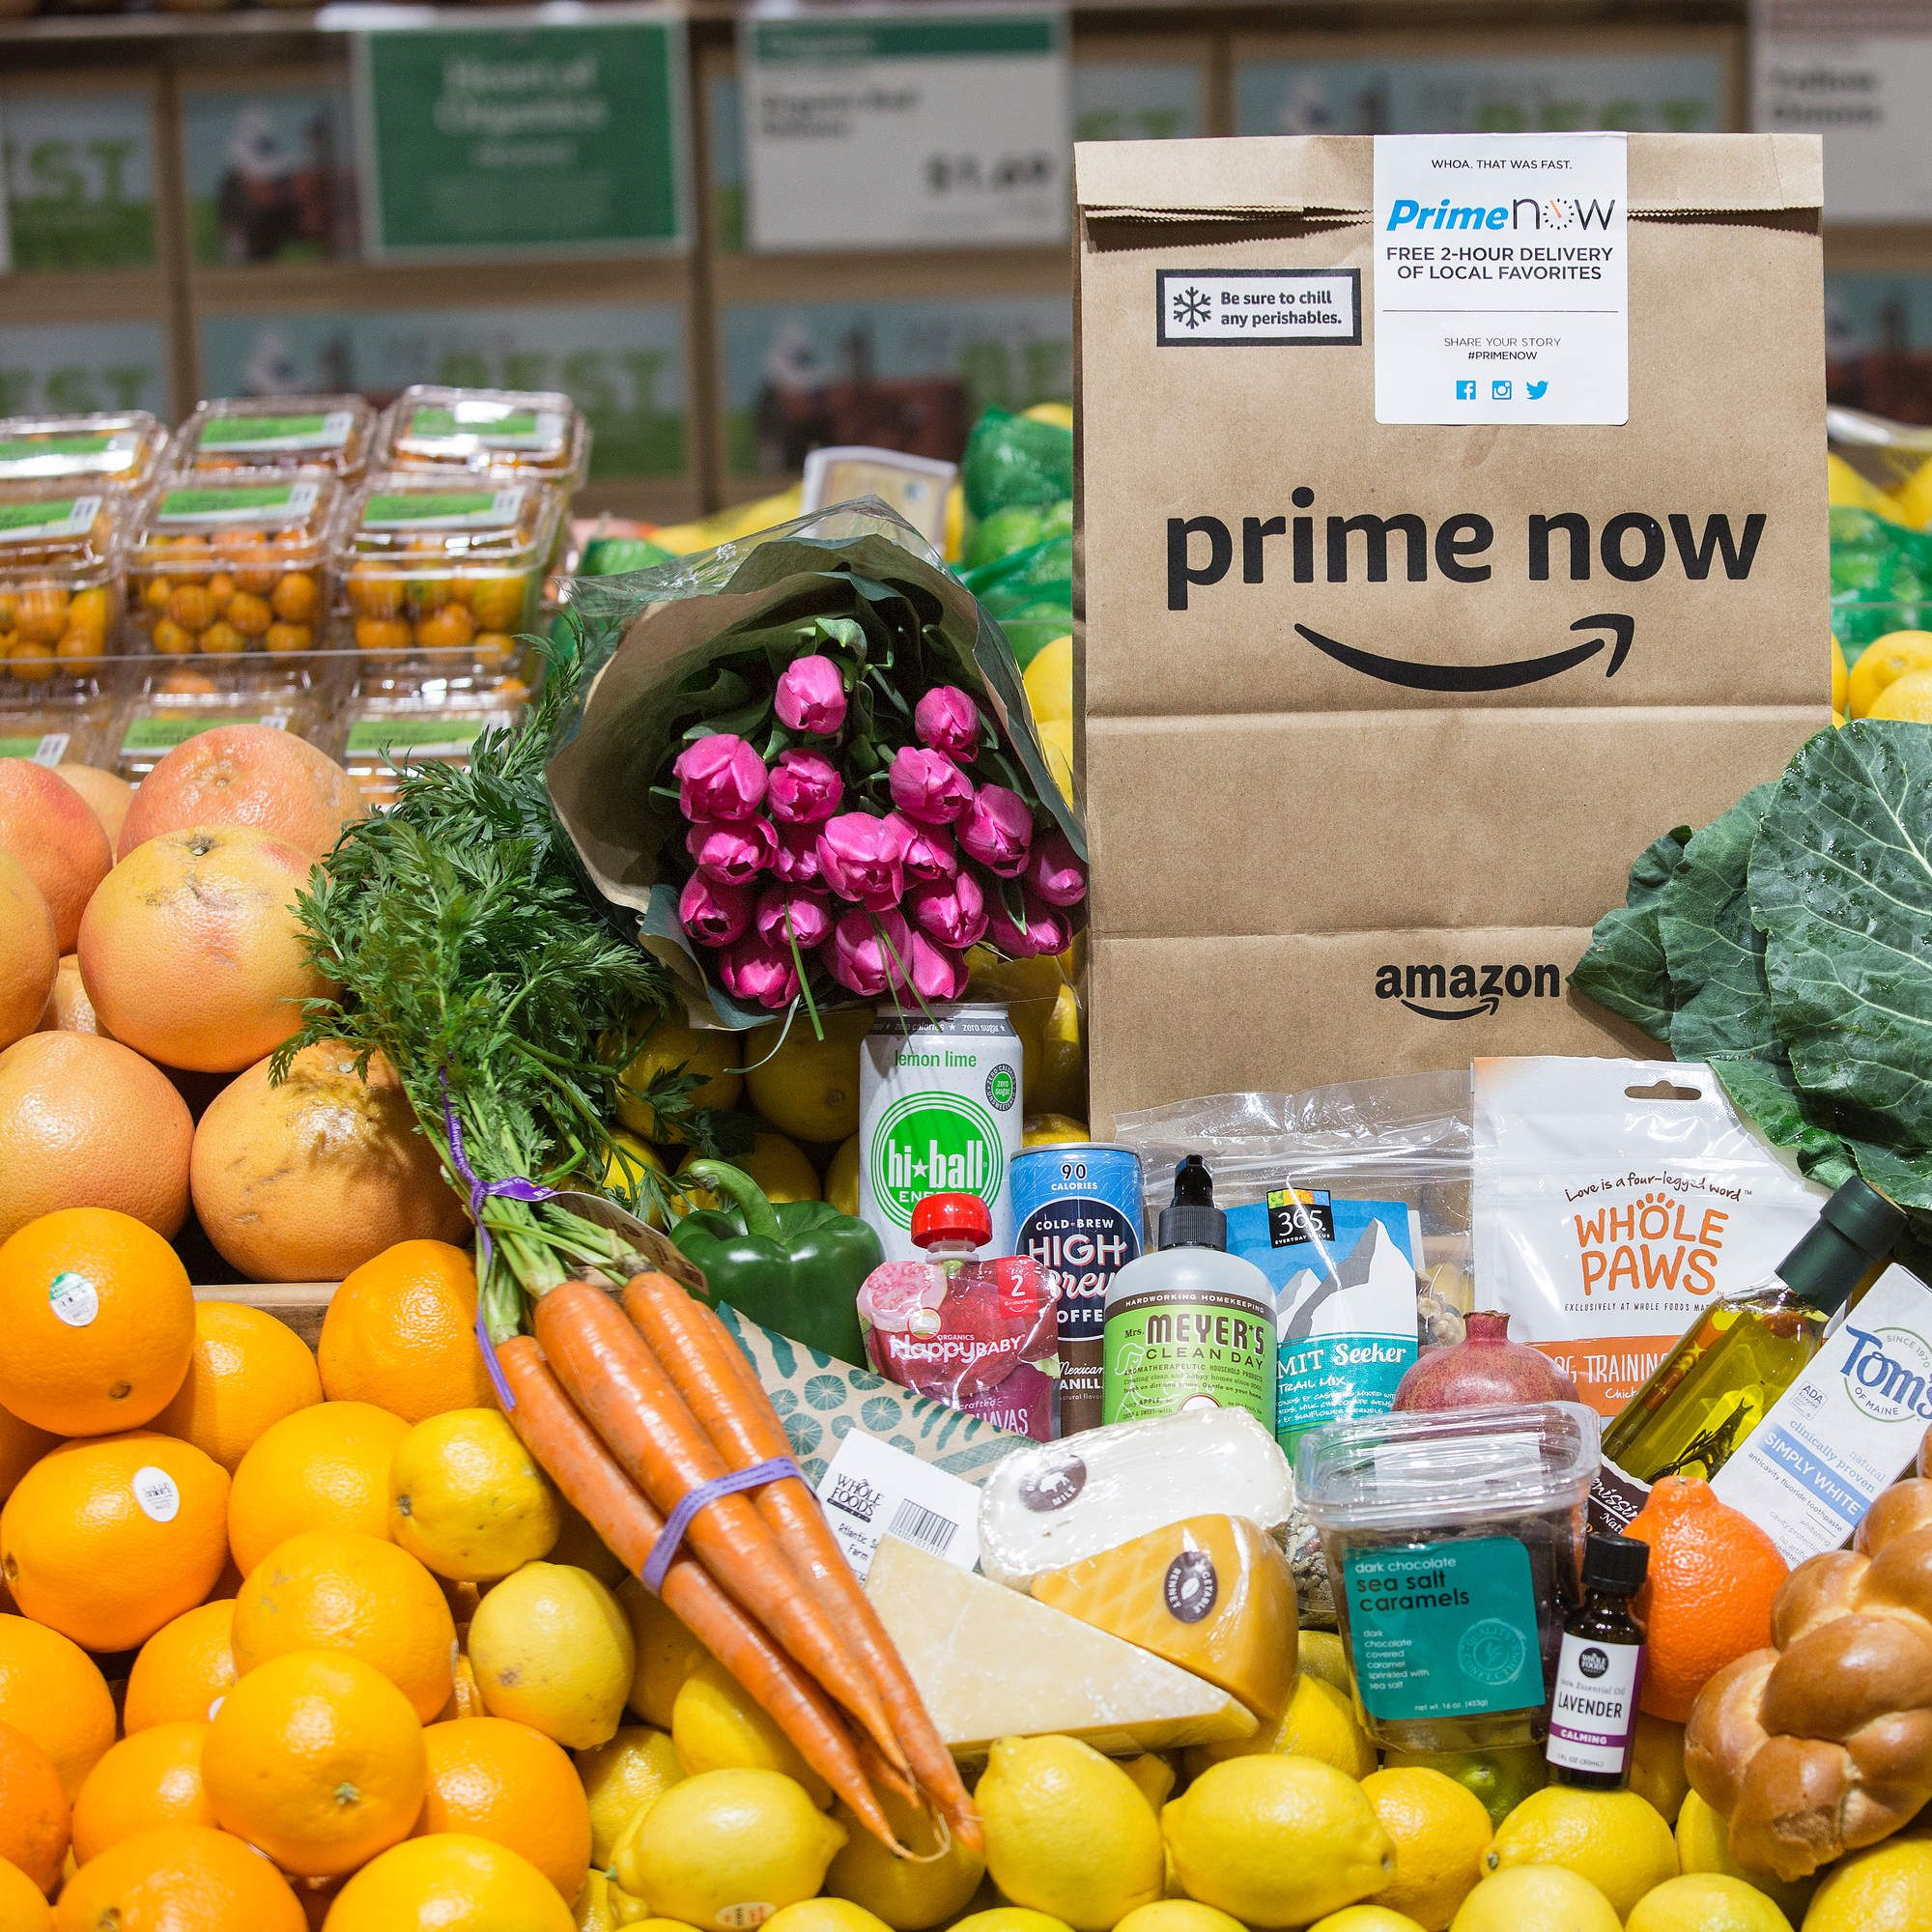 It's Official Amazon Now Offers Free 2Hour Whole Foods